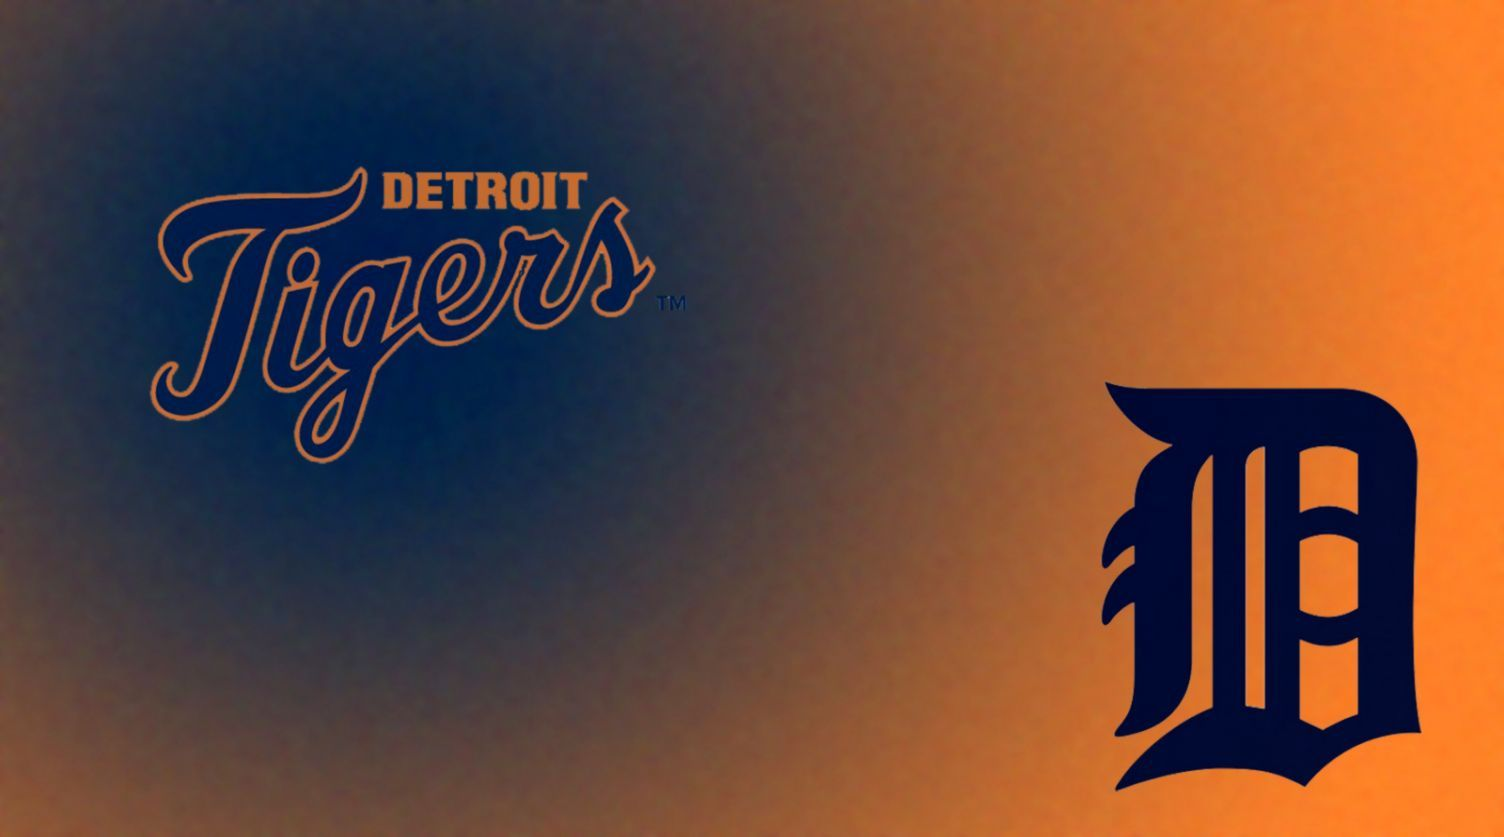 Detroit Tigers Wallpapers Top Free Detroit Tigers Backgrounds Wallpaperaccess